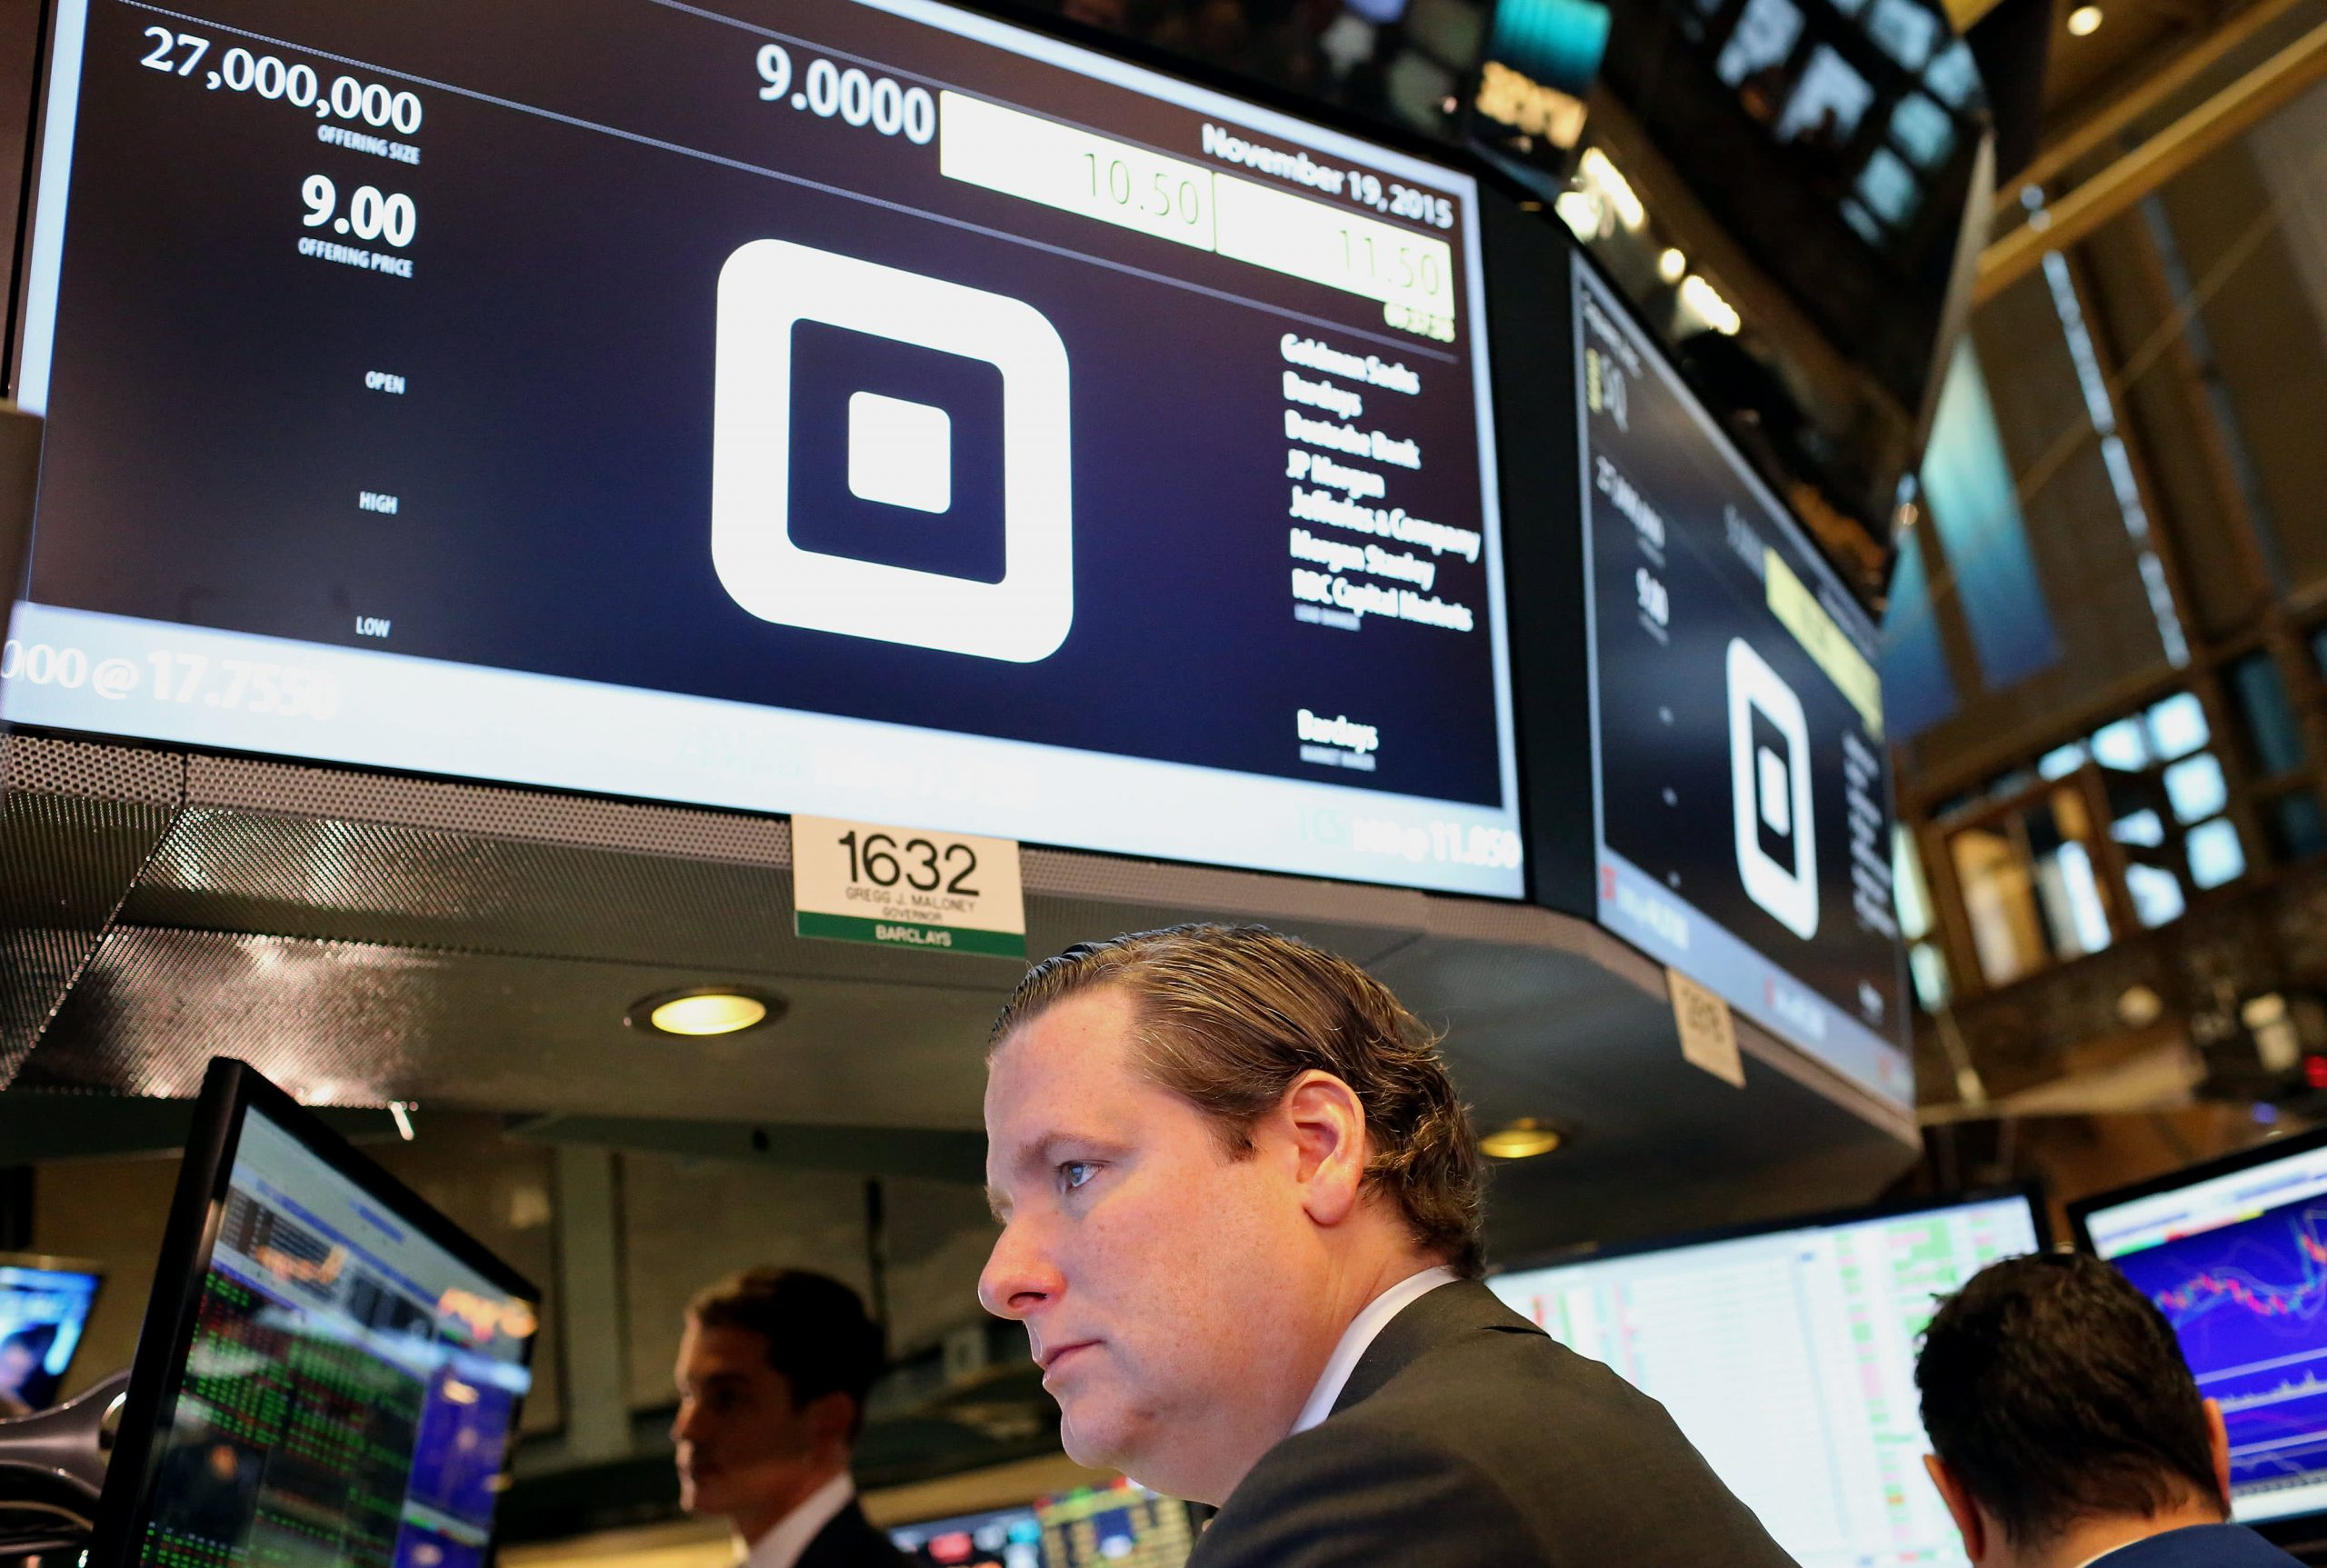 Square closes up 5.5% after report that it plans to offer checking and savings accounts